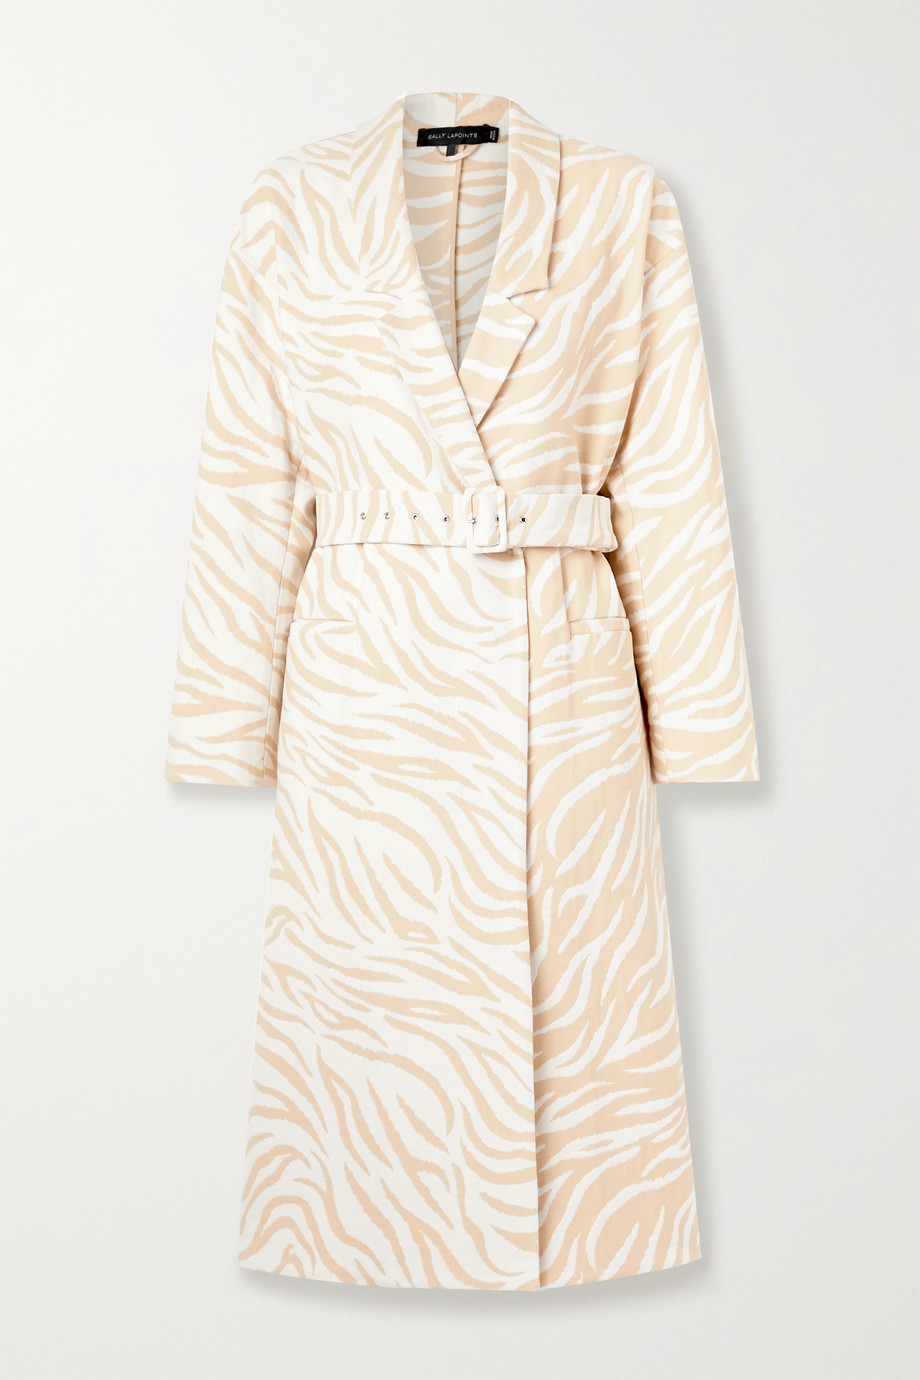 Sally LaPointe Belted double-breasted cotton-blend zebra-jacquard coat